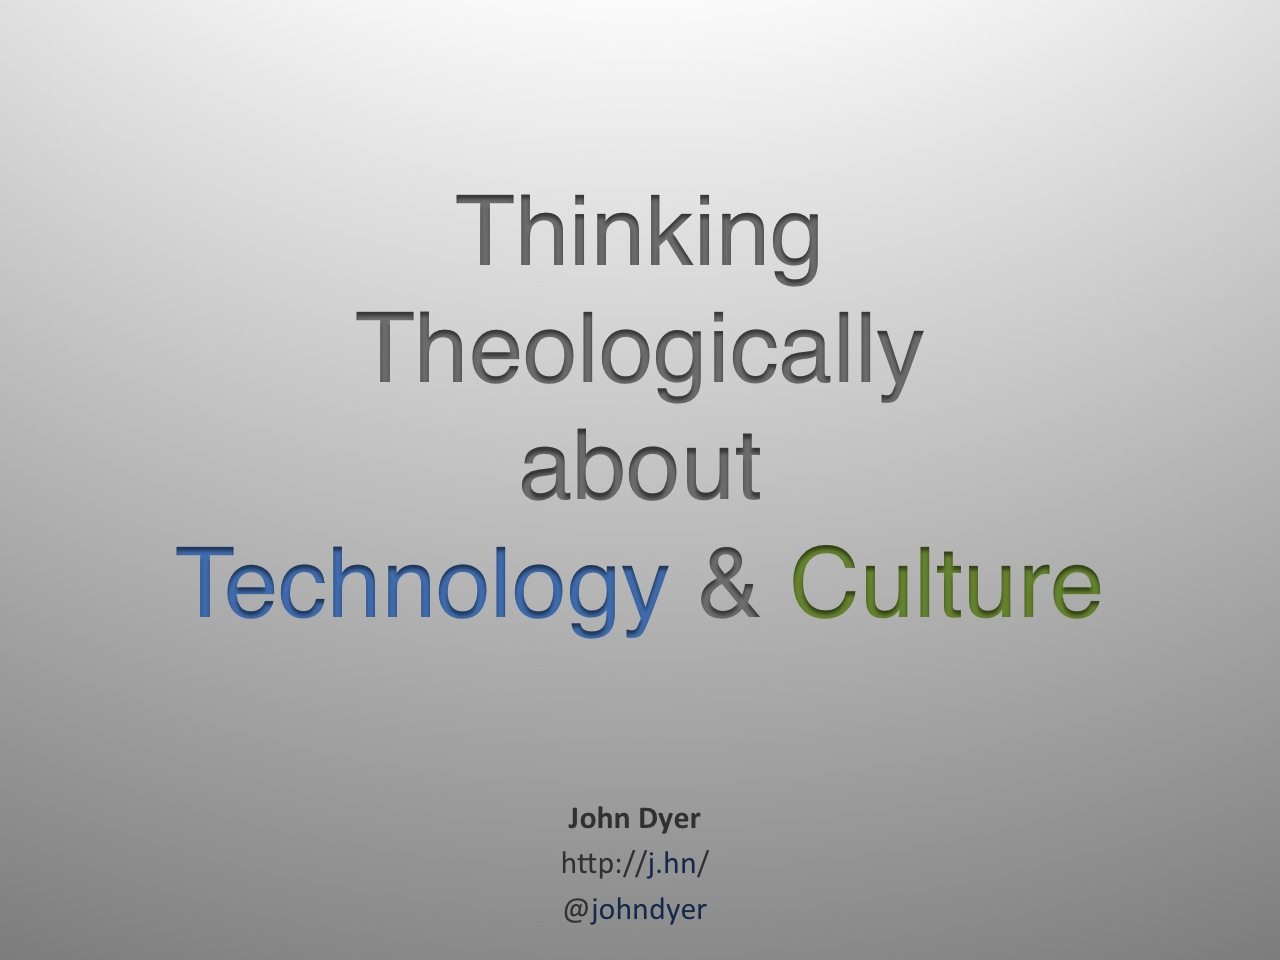 Thinking Theologically about Technolog and Culture